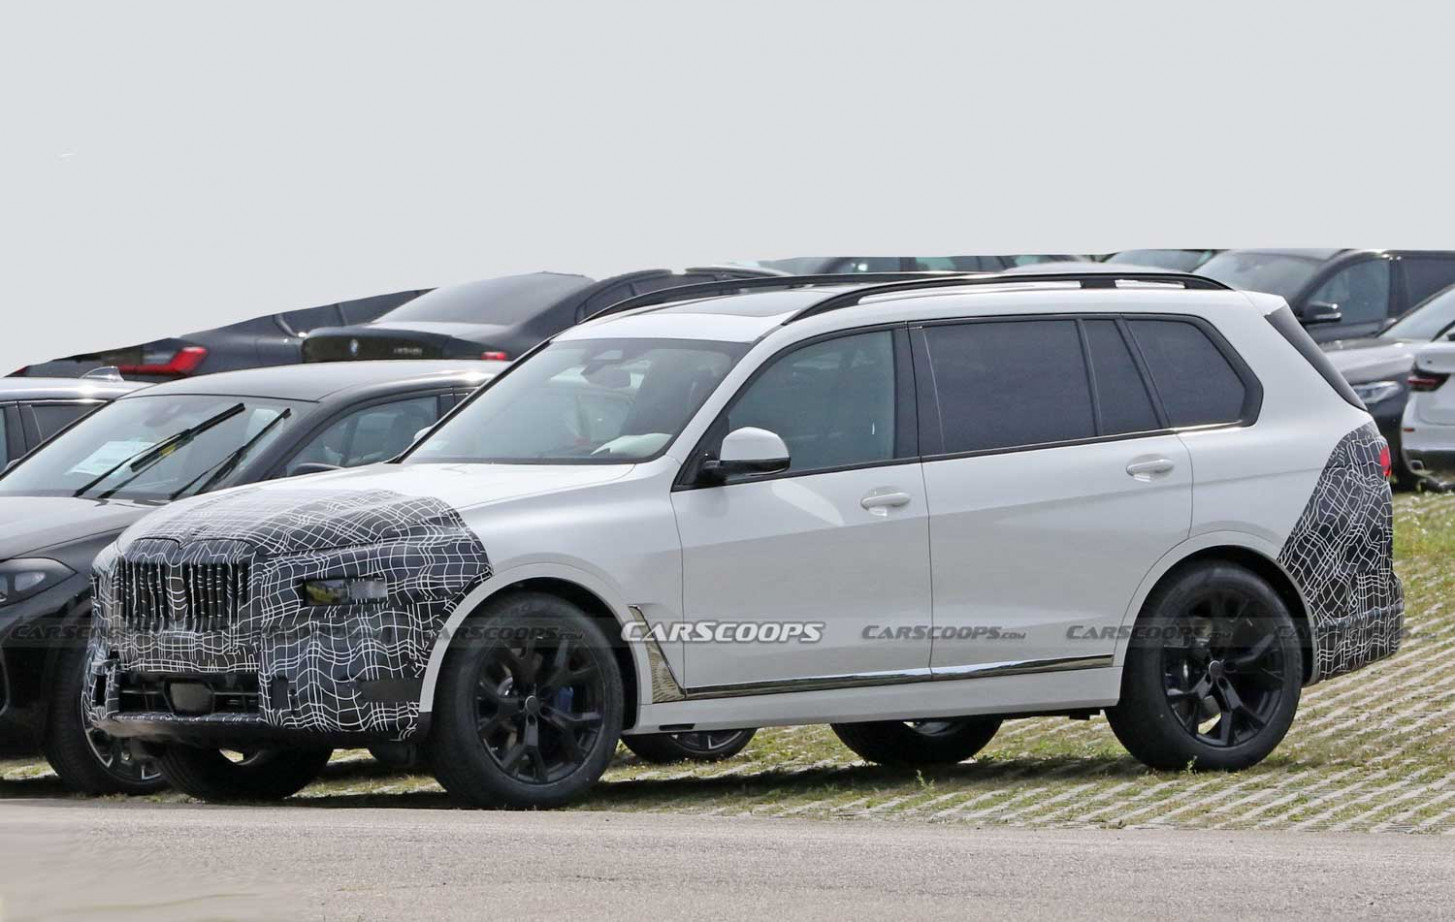 Redesign and Review 2022 BMW X7 Suv